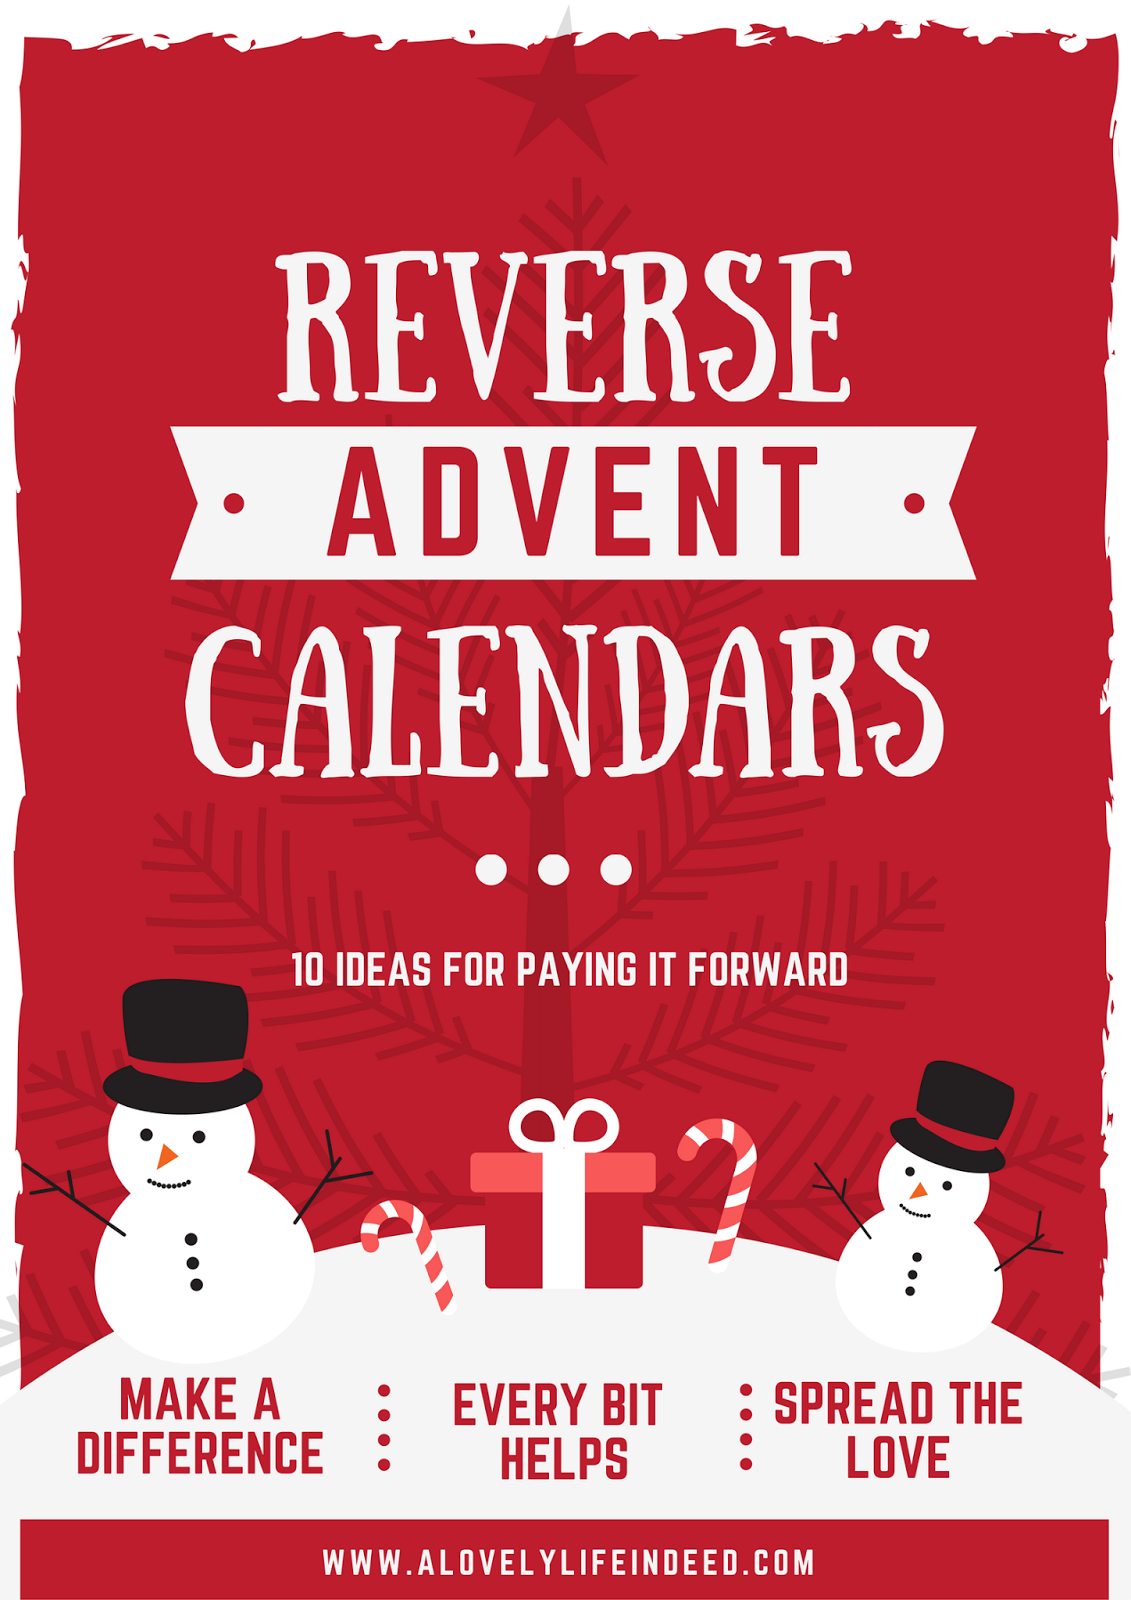 Calendar Category Ideas : A lovely life indeed reverse advent calendar ideas